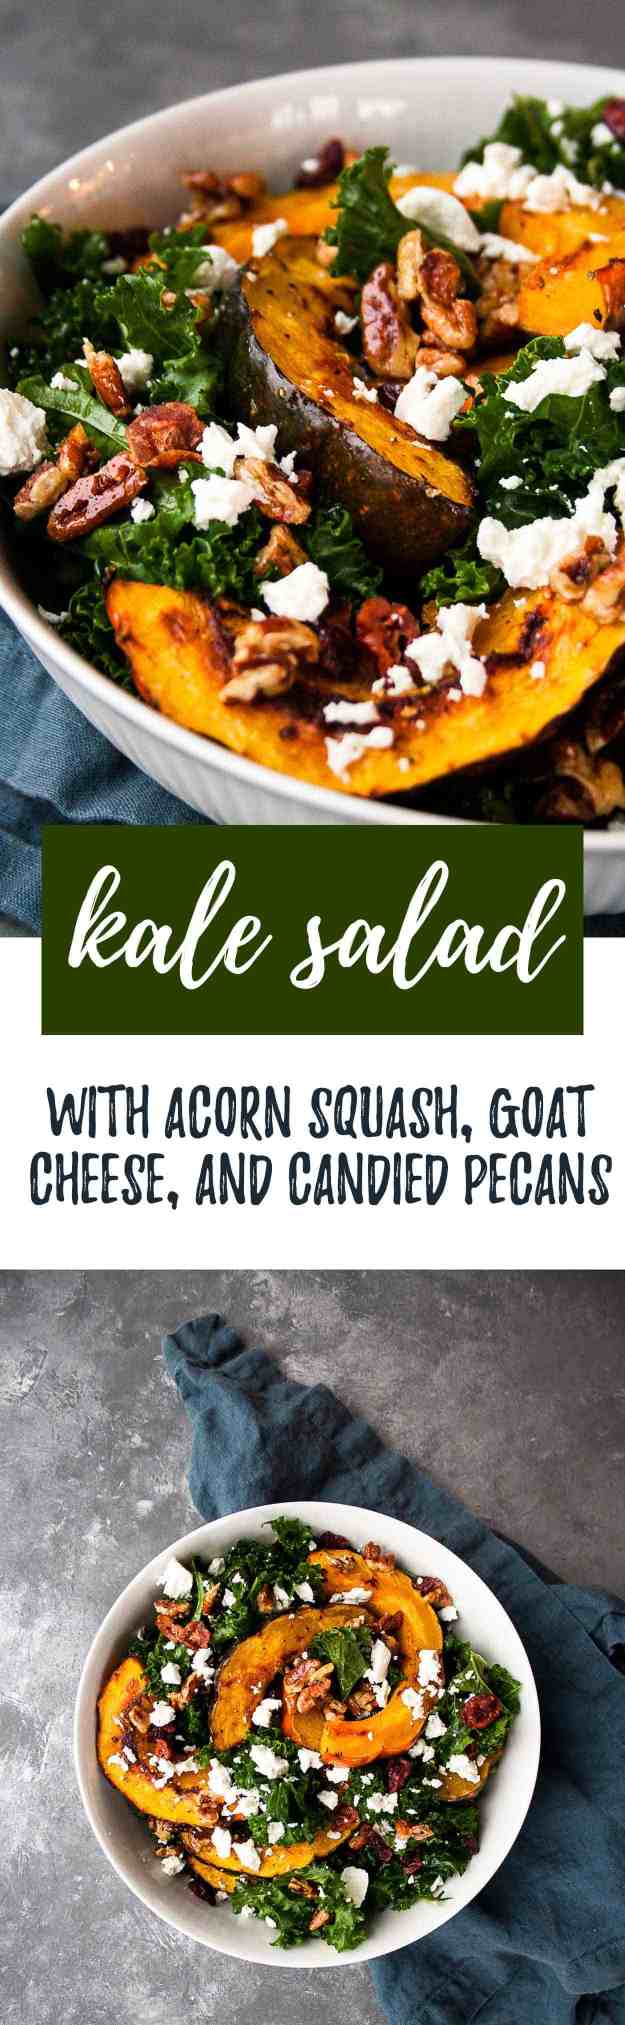 Kale Sald with Acorn Squash, Goat Cheese, and Candied Pecans | #paleo #salad #thanksgiving #sidedish #squashsalad | hungrybynature.com